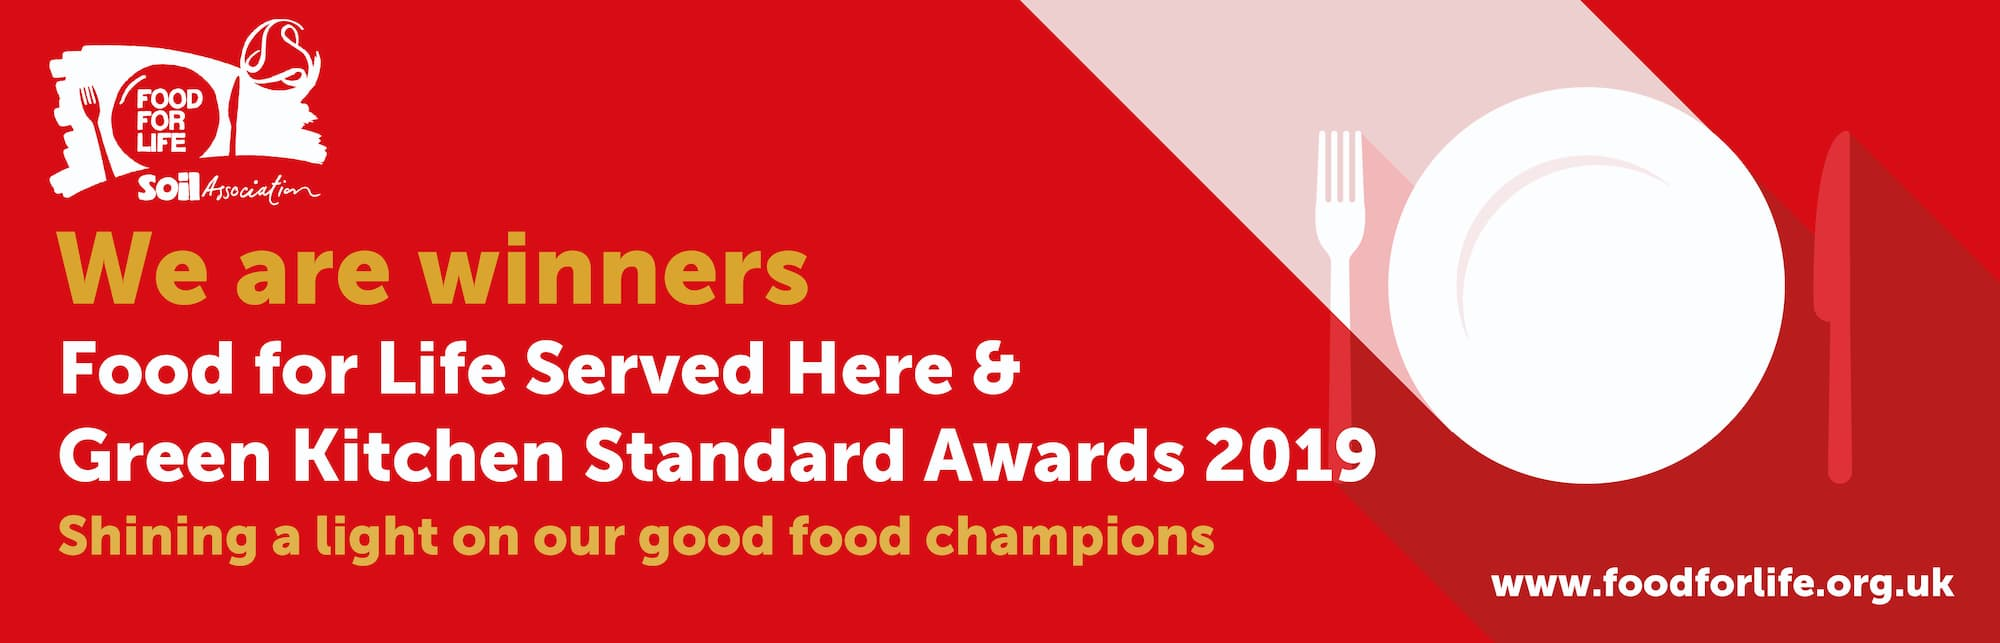 Healthcare Champion Award 2019 banner